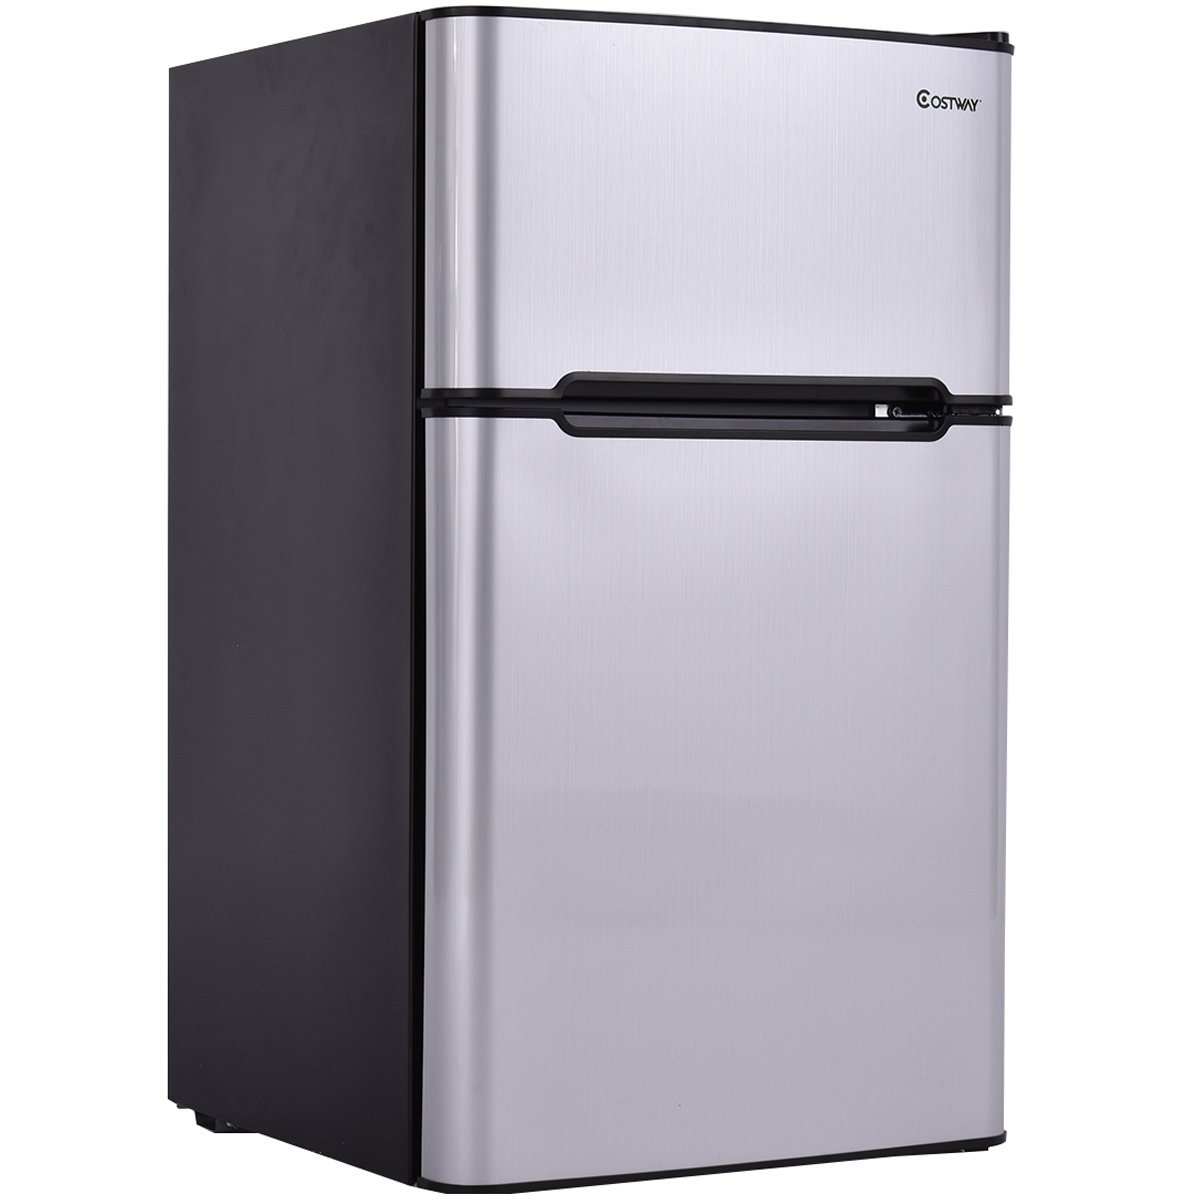 Costway 2-Door Compact Refrigerator 3.2 cu ft. Unit Small Freezer Cooler Fridge (Gray)